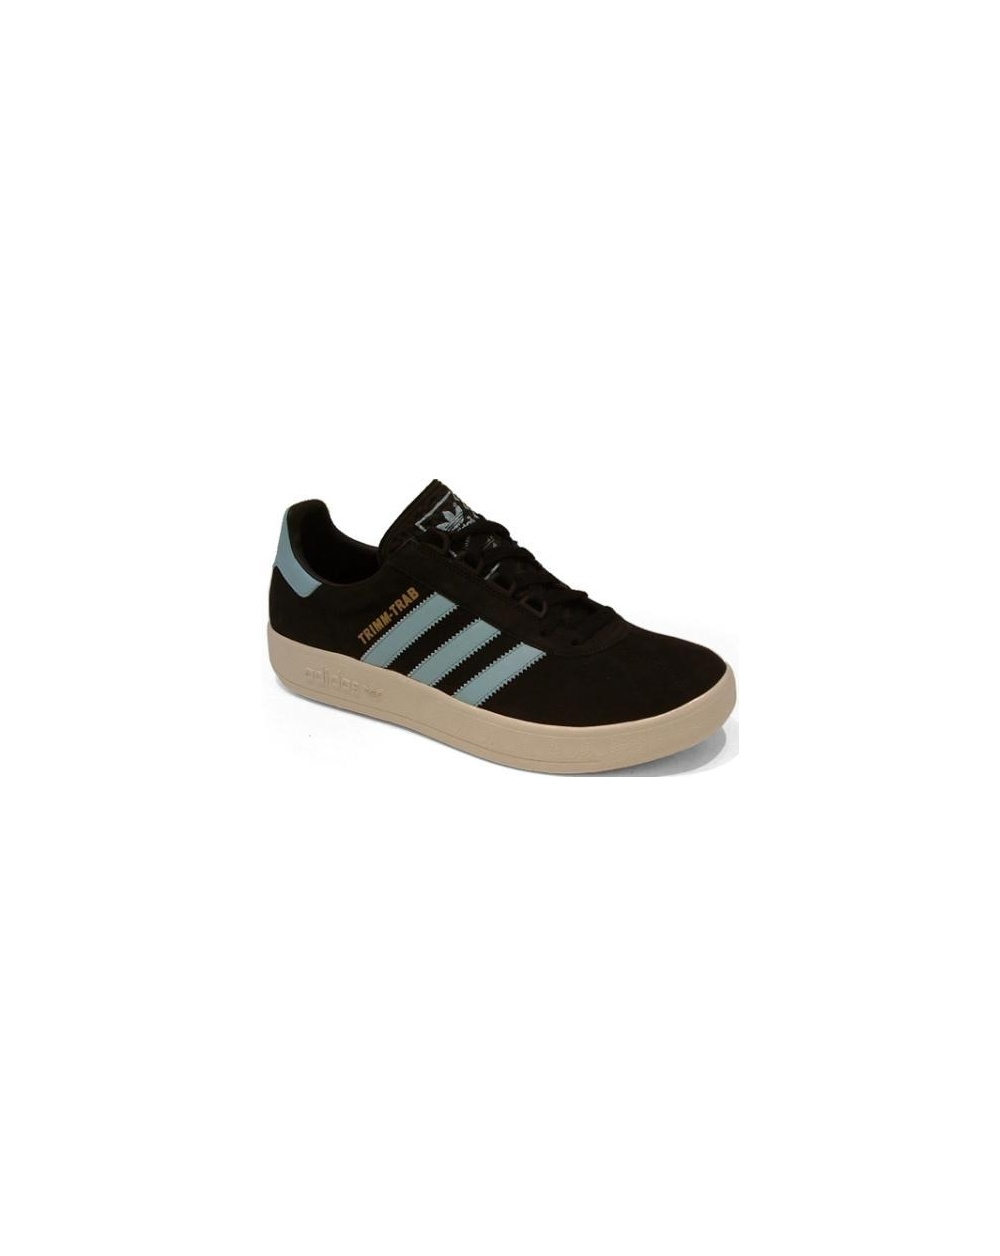 326c125fc adidas Trainers Adidas Trimm Trab Trainers Navy Argentina Blue